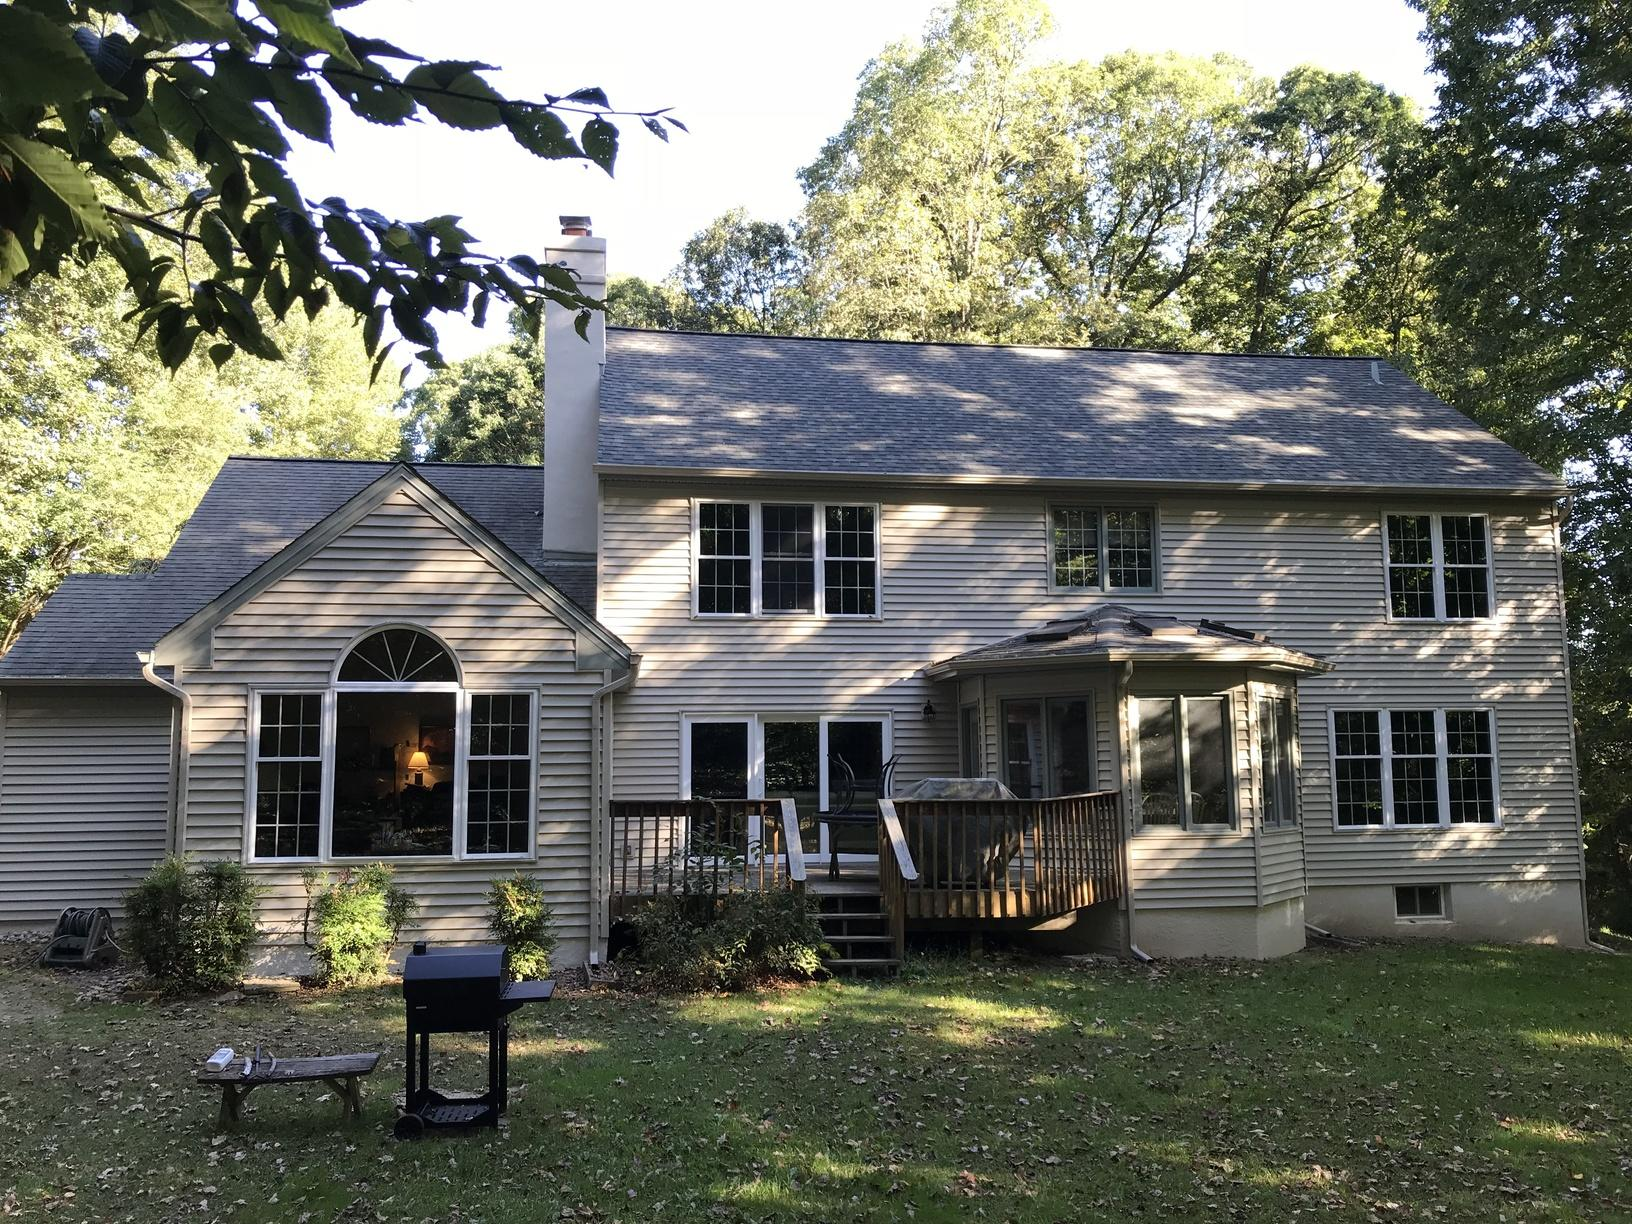 GlobalTech Vinyl Siding and Window Install in West Chester, PA